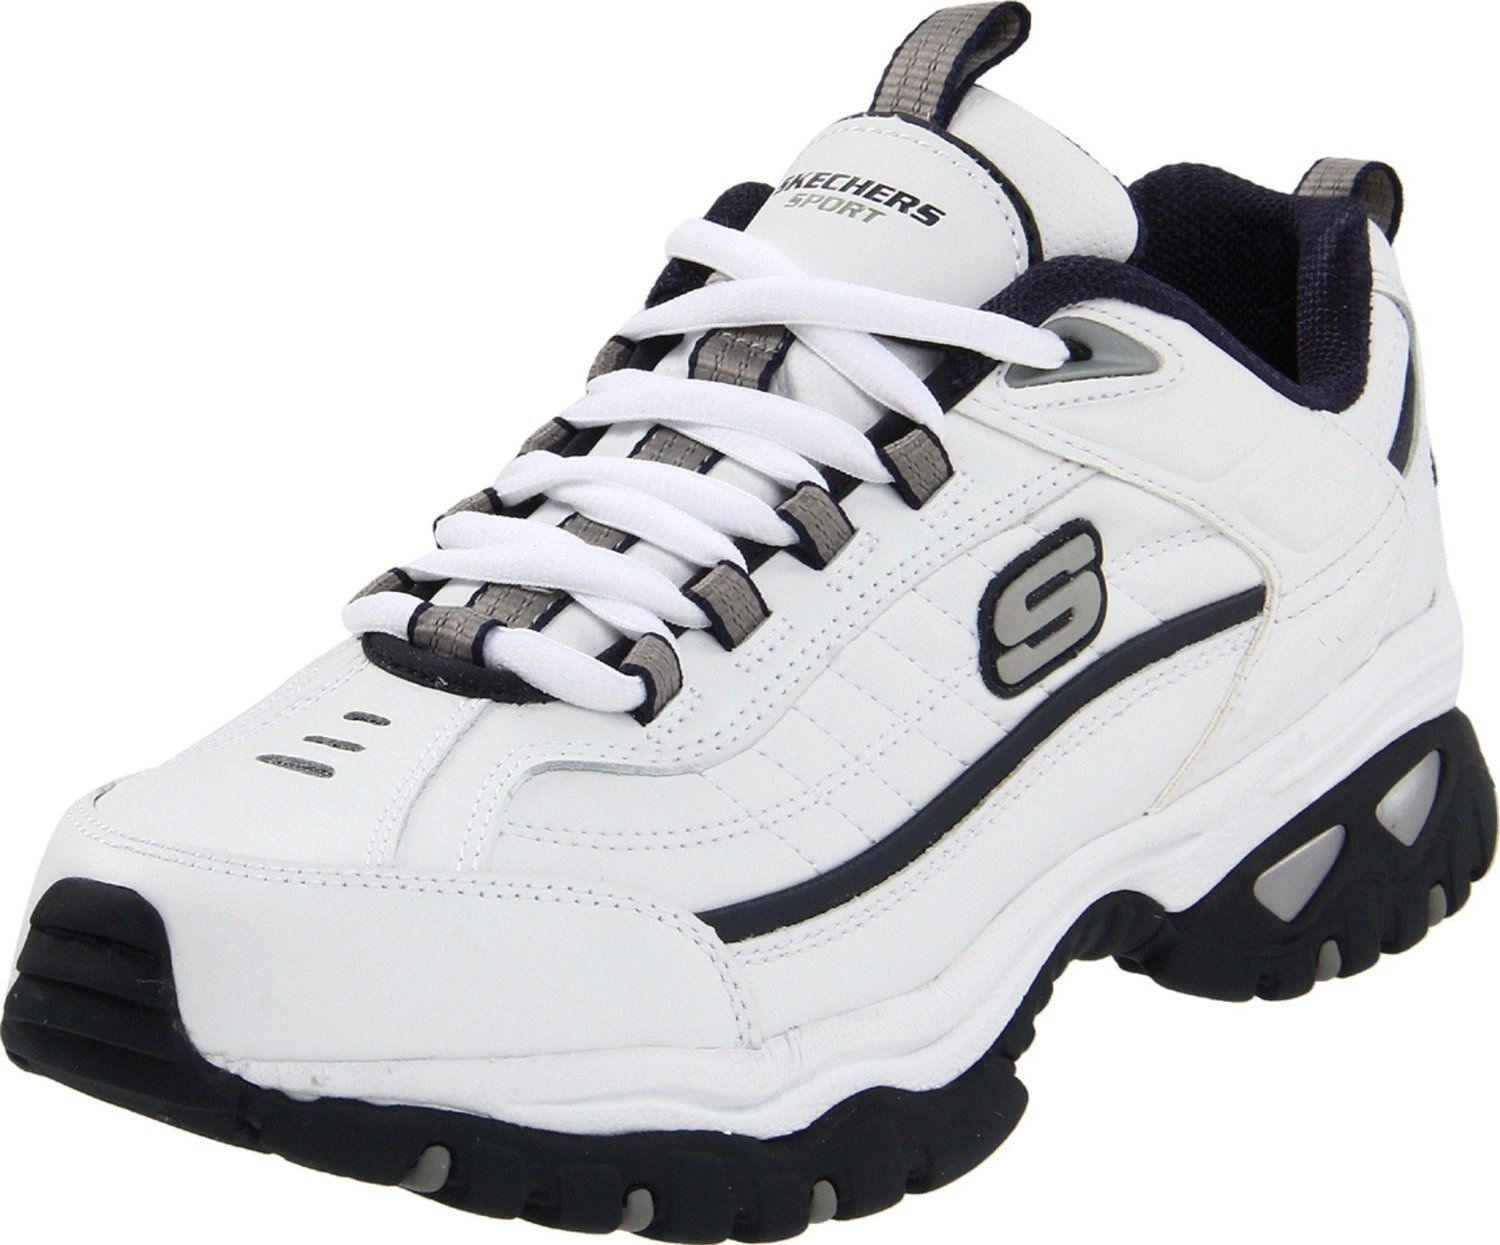 Skechers Men's Energy Afterburn Lace Up Price: $29.99 - $60.00 http://www